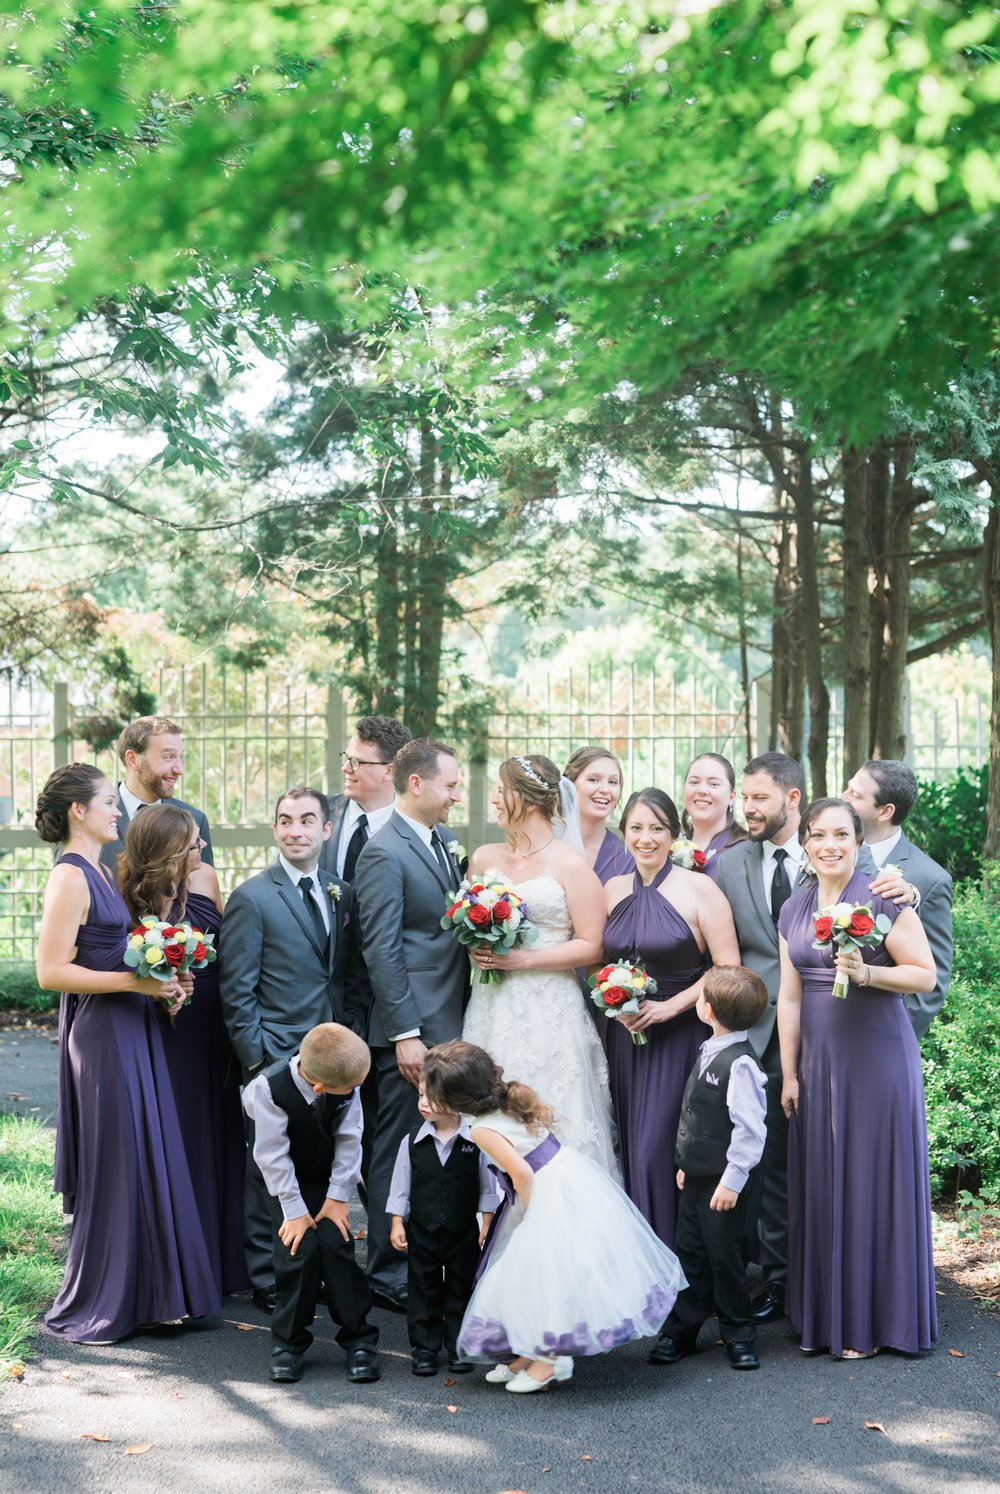 TheAtriumatMeadowlark_Virginiawedding photographer_lynchburgweddingphotographer_DCweddingPhotographer_KristinAaron 3.jpg